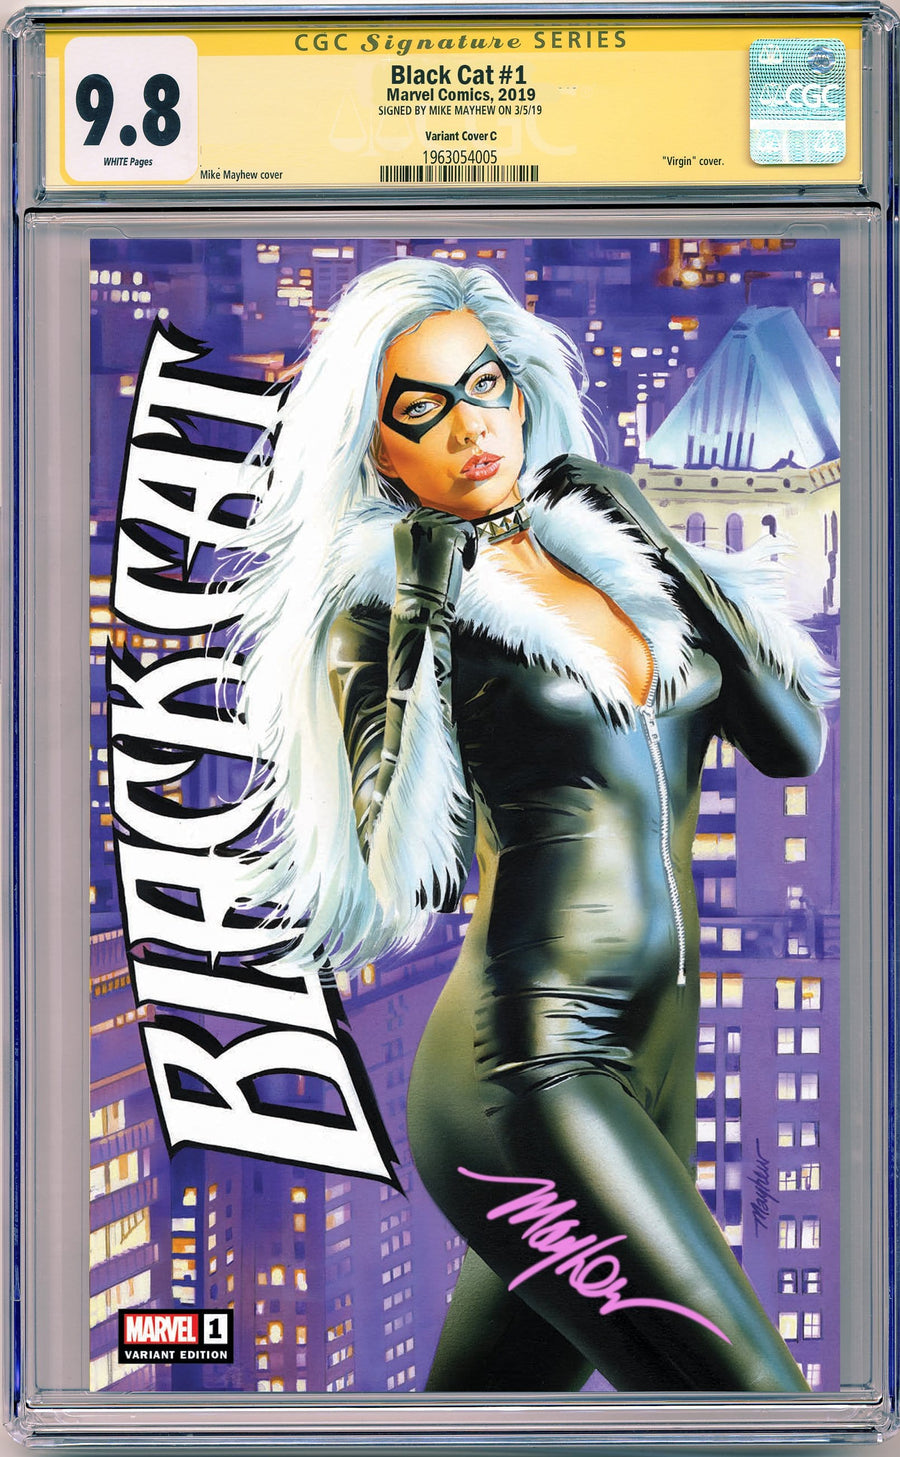 BLACK CAT #1 MIKE MAYHEW STUDIO EXCLUSIVE VARIANTS CGC SIG SERIES 9.8 OPTIONS